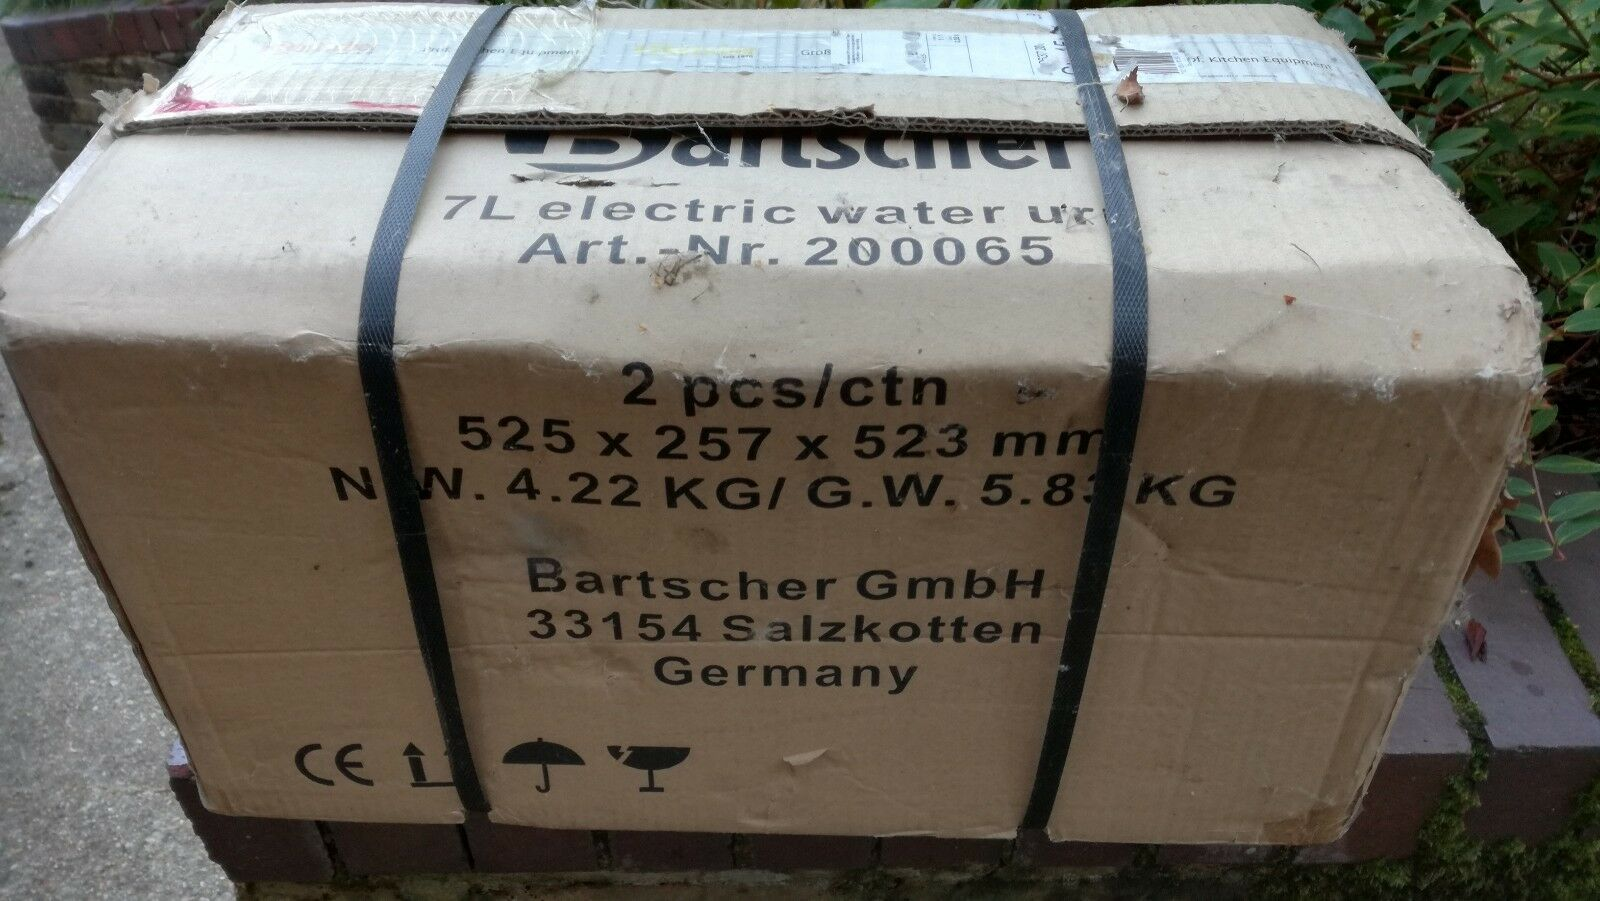 Bartscher 200065  7 litre electric  hot water soup punch mulled wine heater